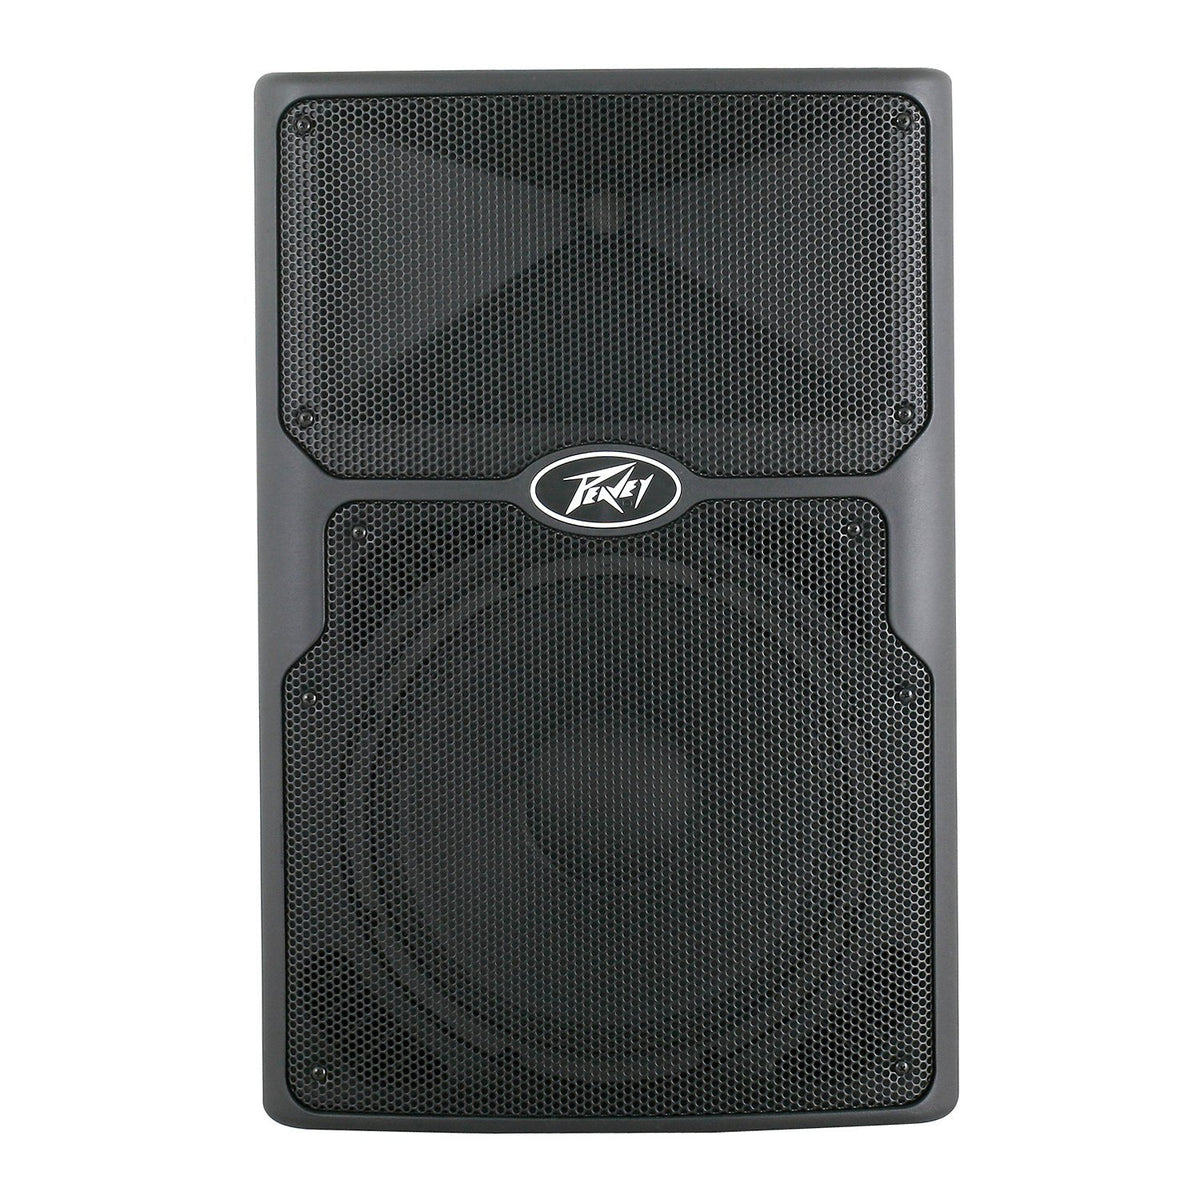 Peavey PVx 15 2-Way Passive, Unpowered PA Speaker, 15 Inch